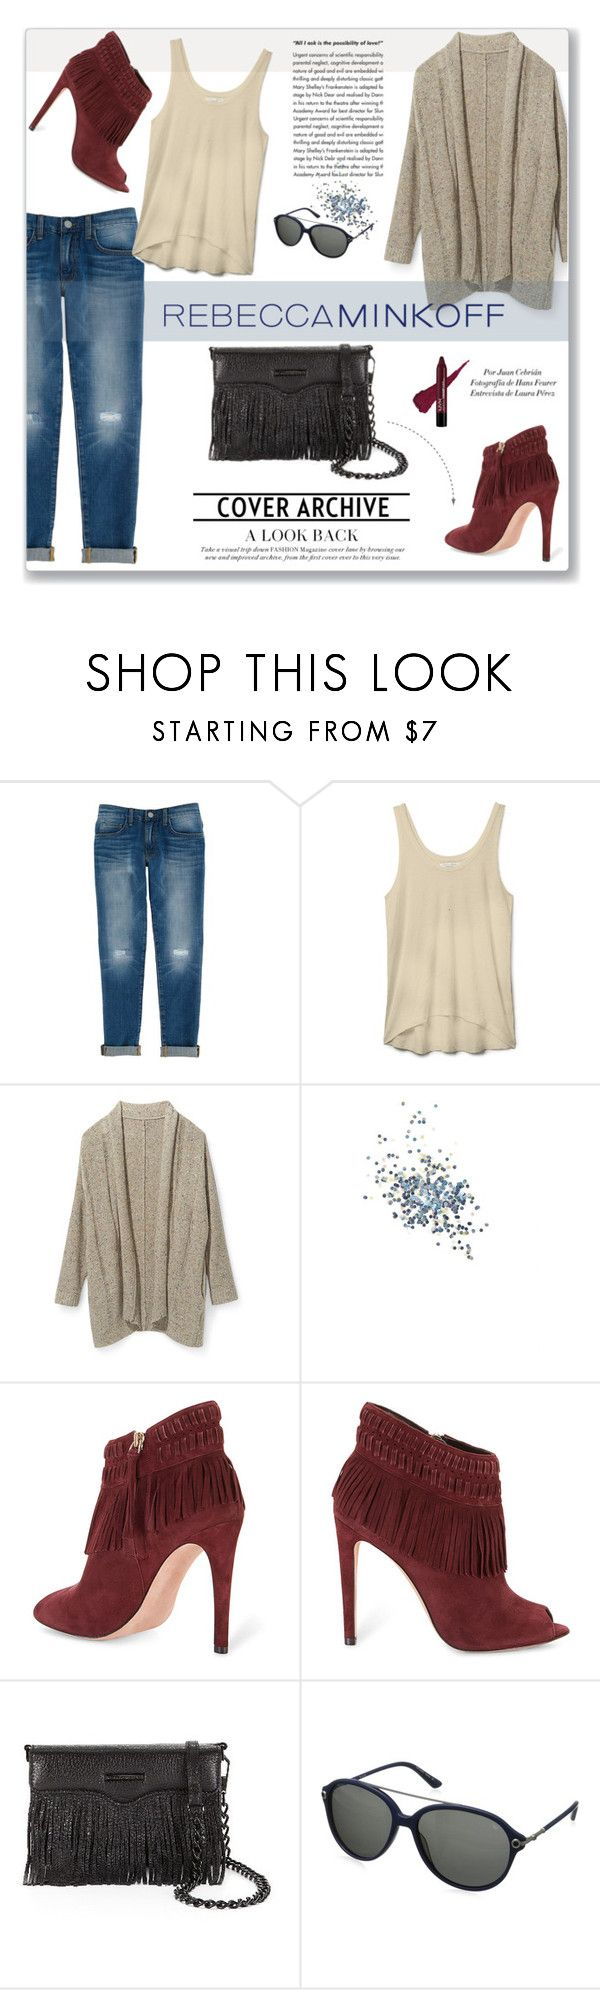 """Rebecca Minkoff's Spring 2016 Collection"" by vidrica ❤ liked on Polyvore featuring Rebecca Minkoff, Topshop, KAROLINA, women's clothing, women, female, woman, misses, juniors and rebeccaminkoff"